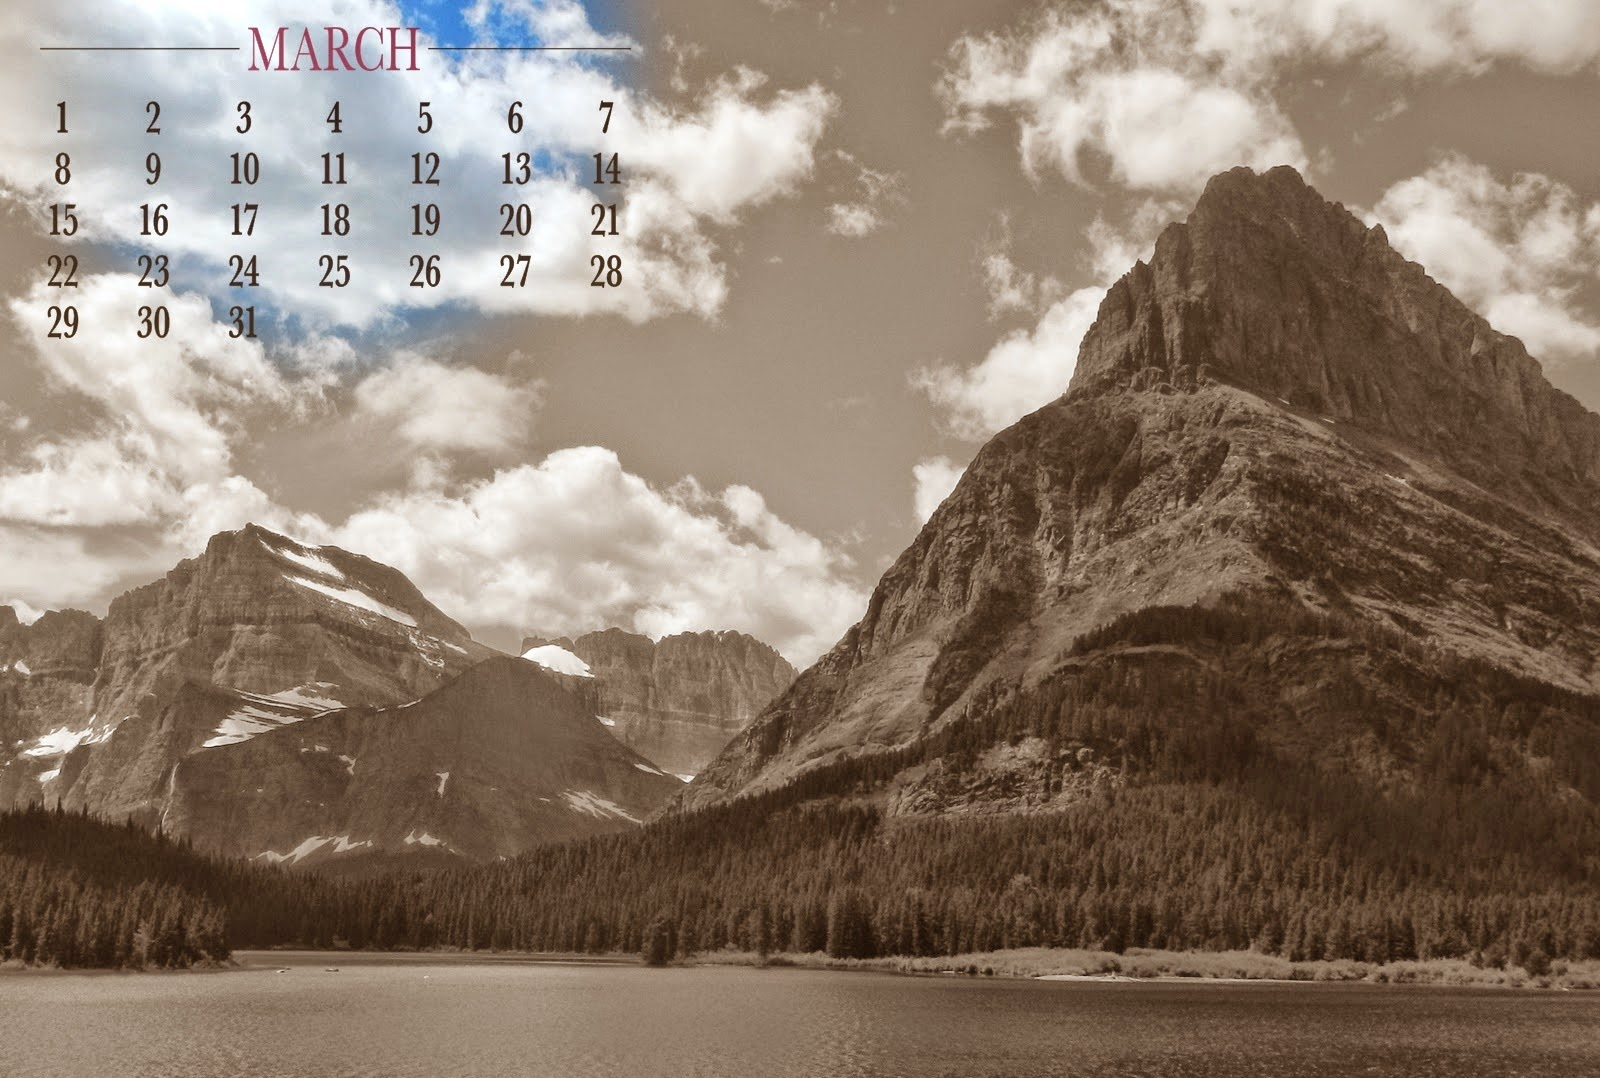 http://glacierparkinc.blogspot.com/2015/03/march-2015-calendar.html